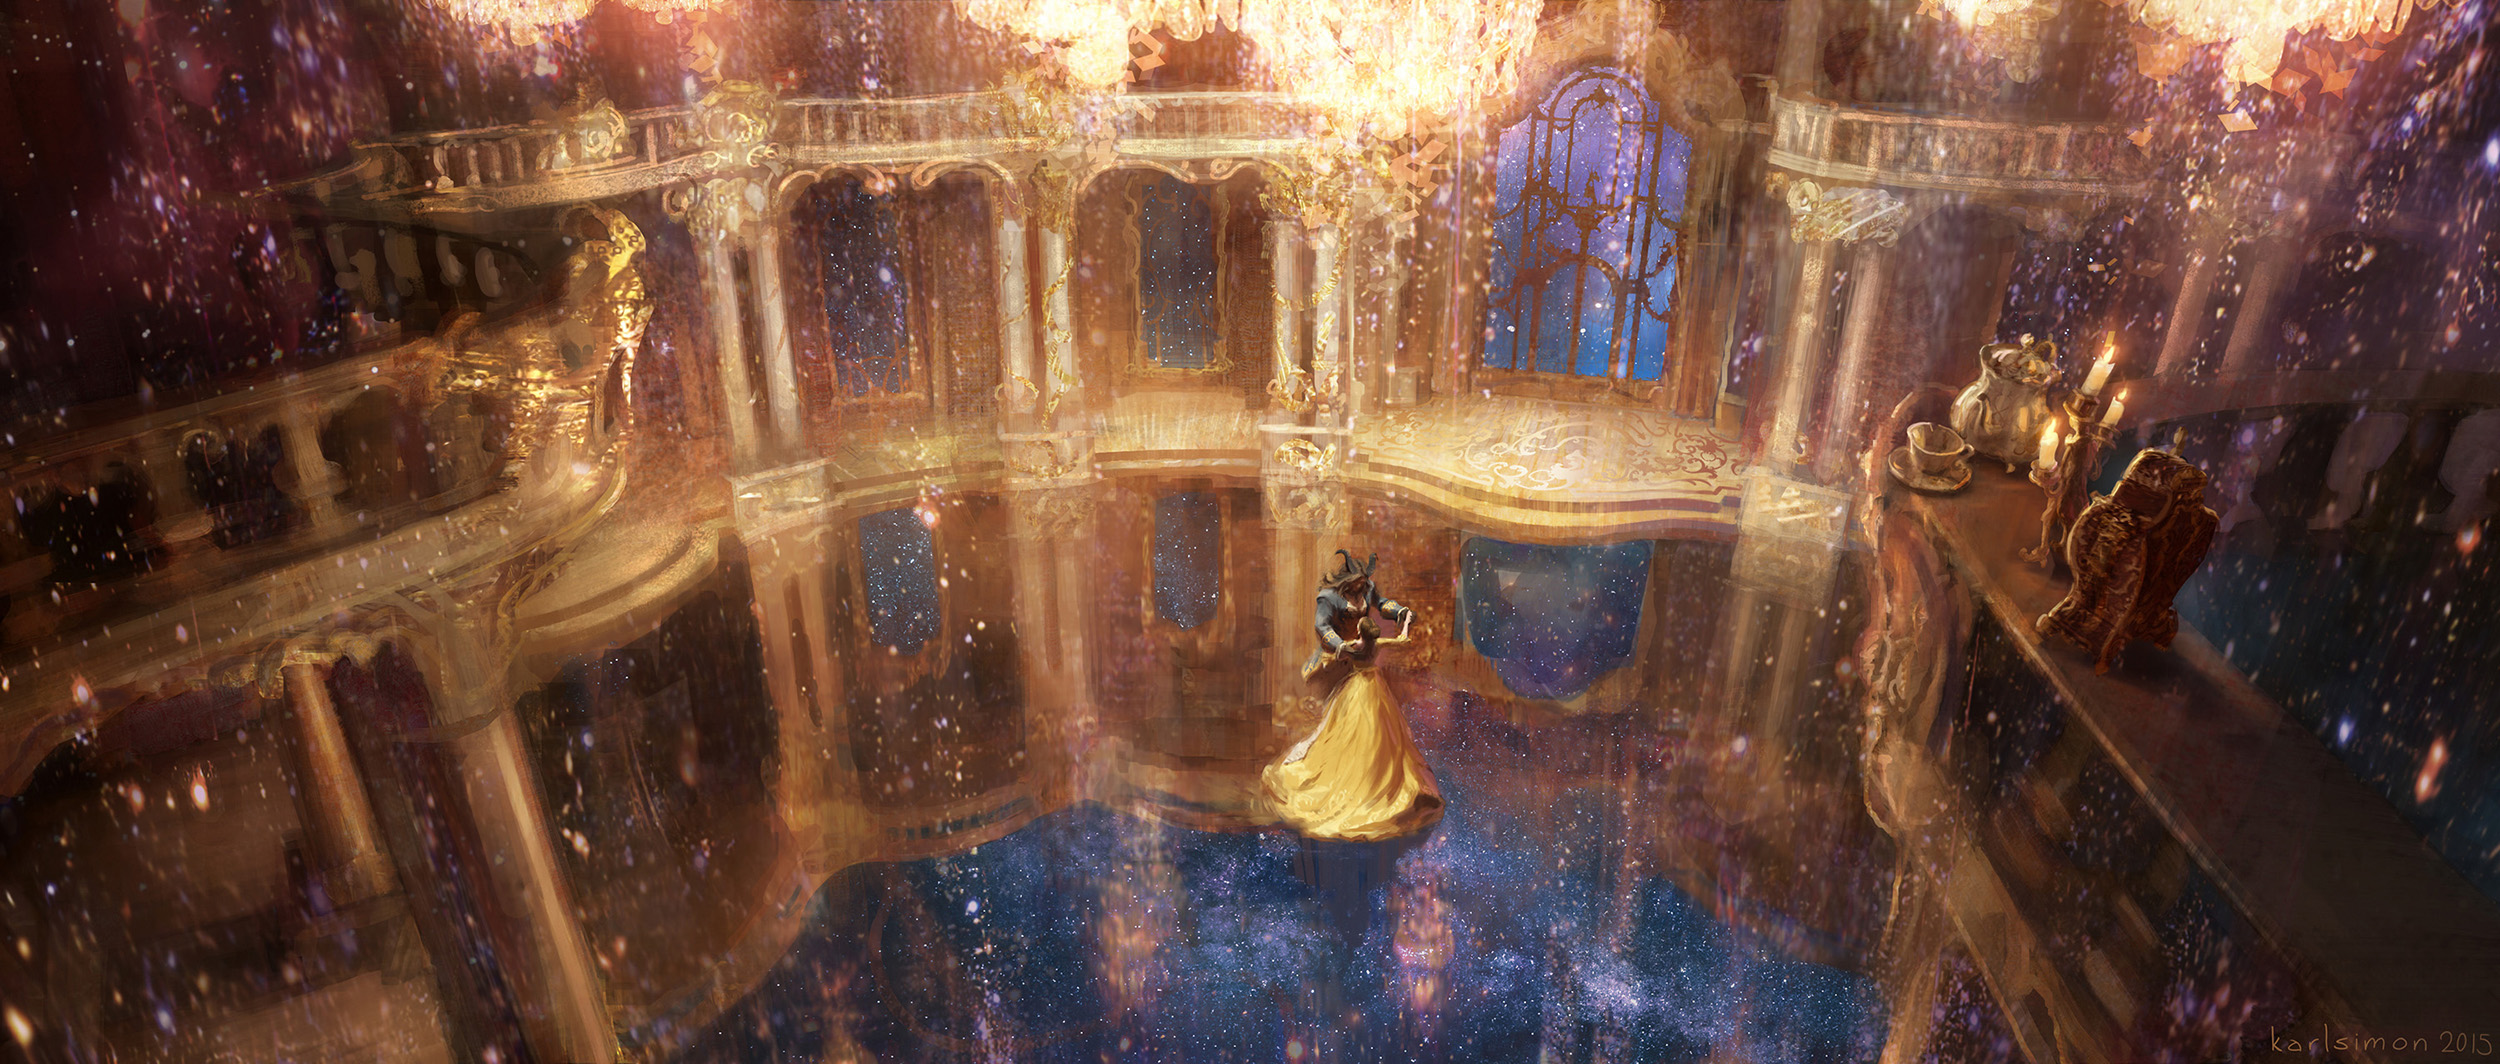 Beauty and the Beast Concept Art by Karl Simon (33 pics)